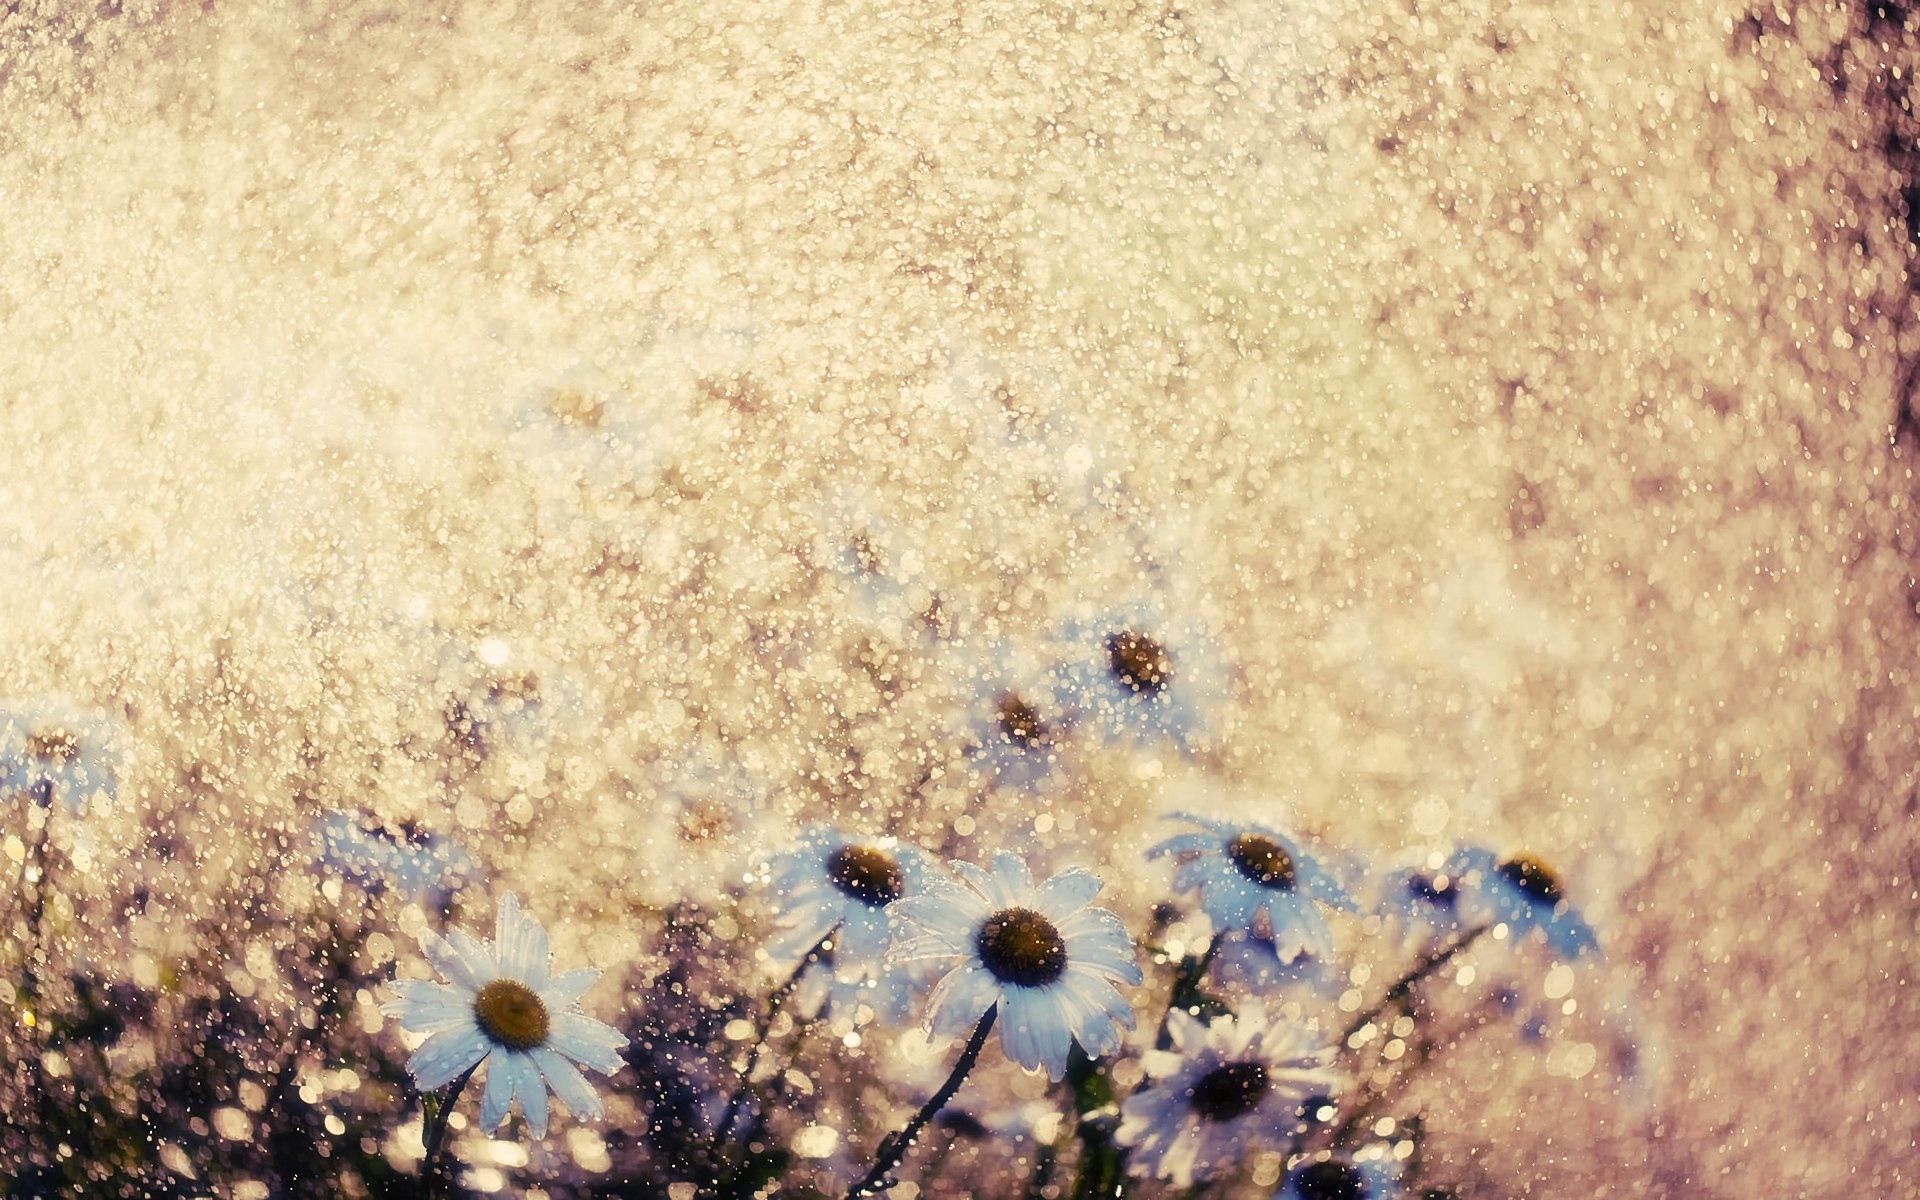 153868 download wallpaper Macro, Camomile, Glare, Shine, Brilliance, Flowers screensavers and pictures for free